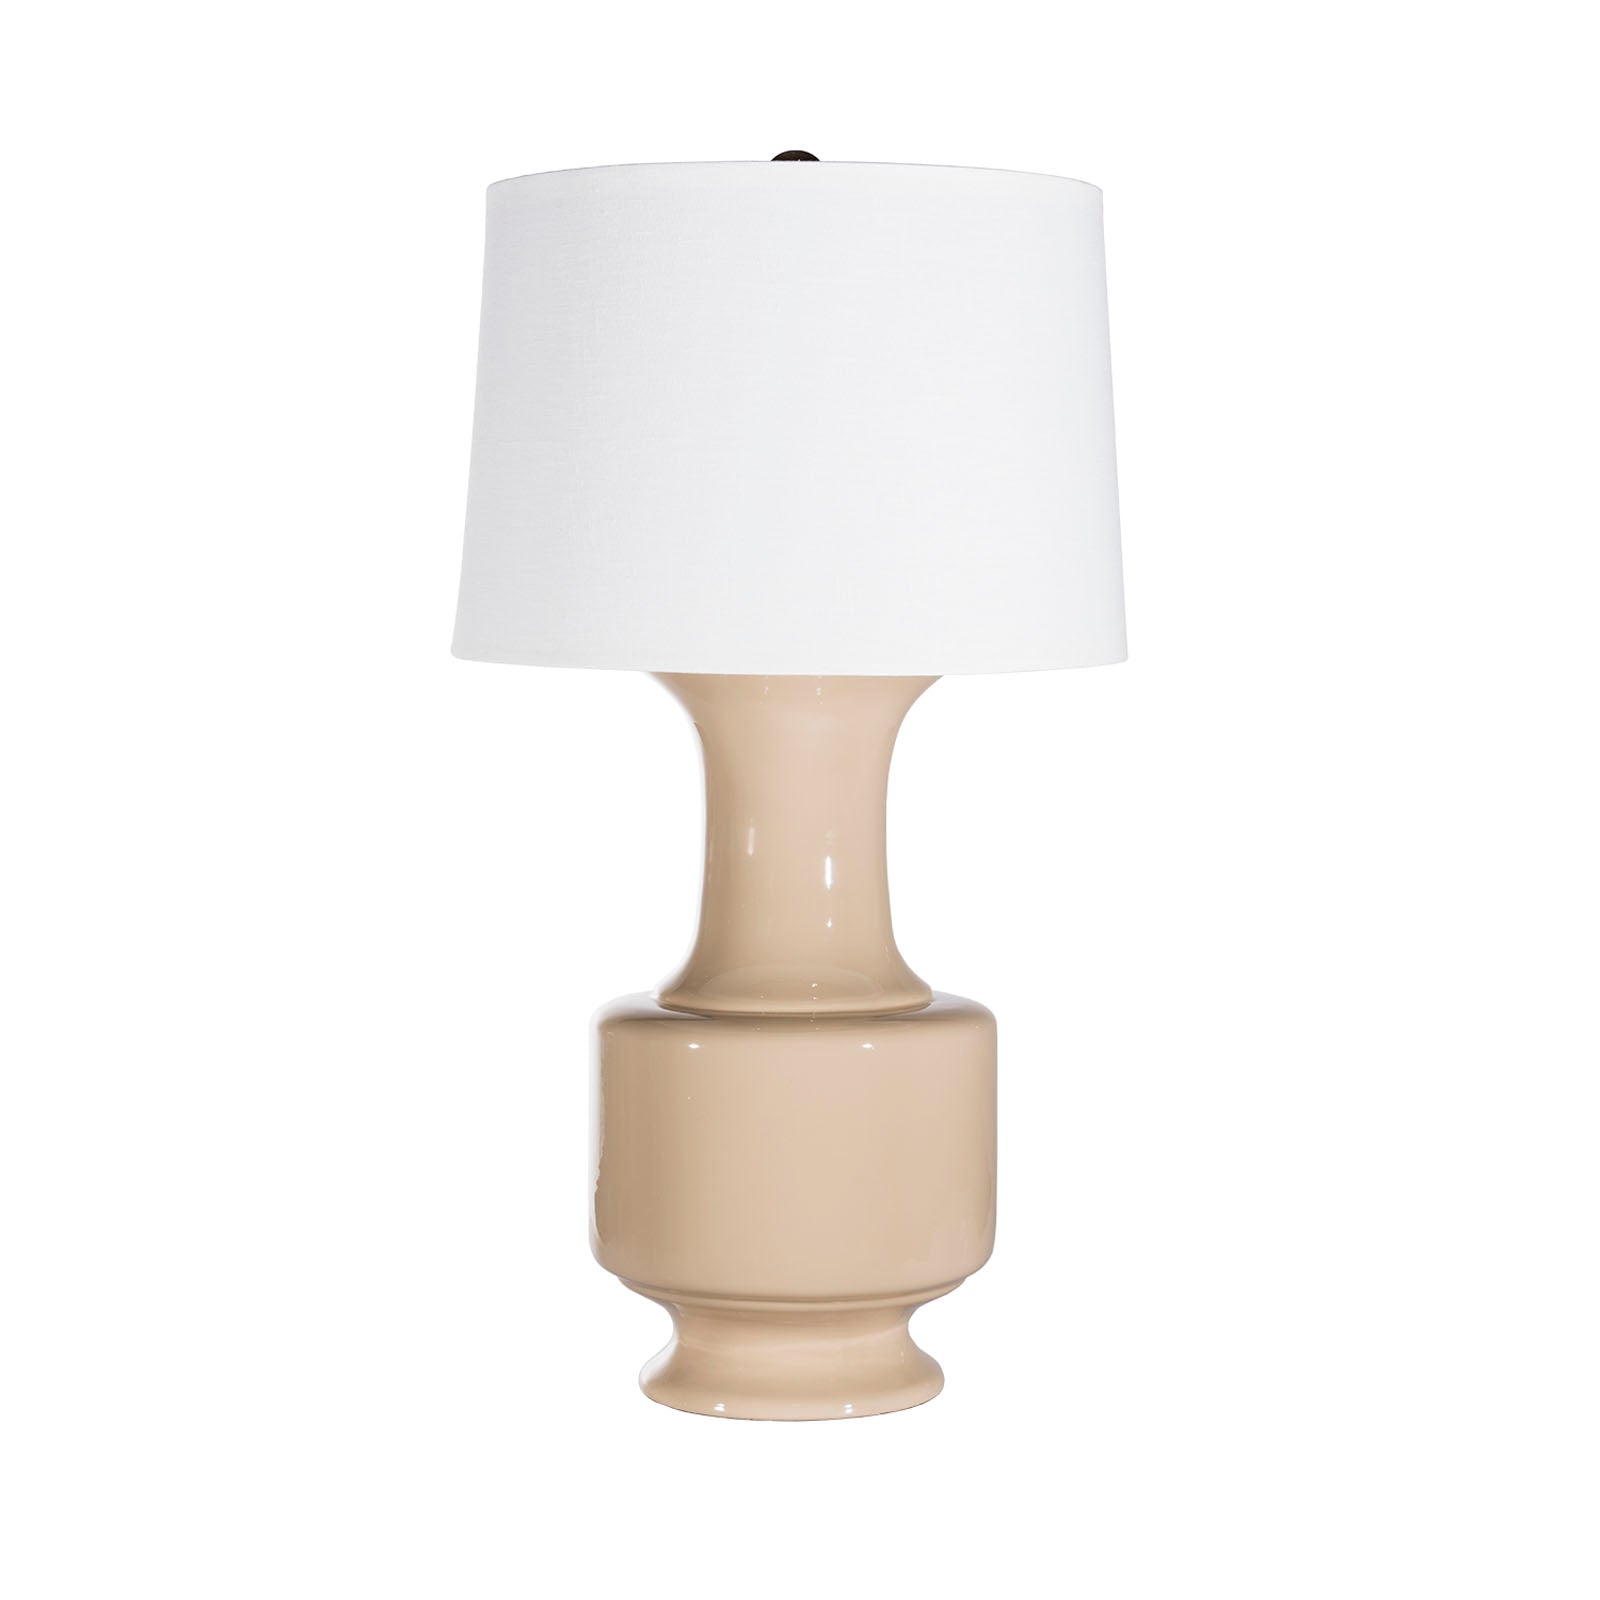 Megan Lamp in Camel